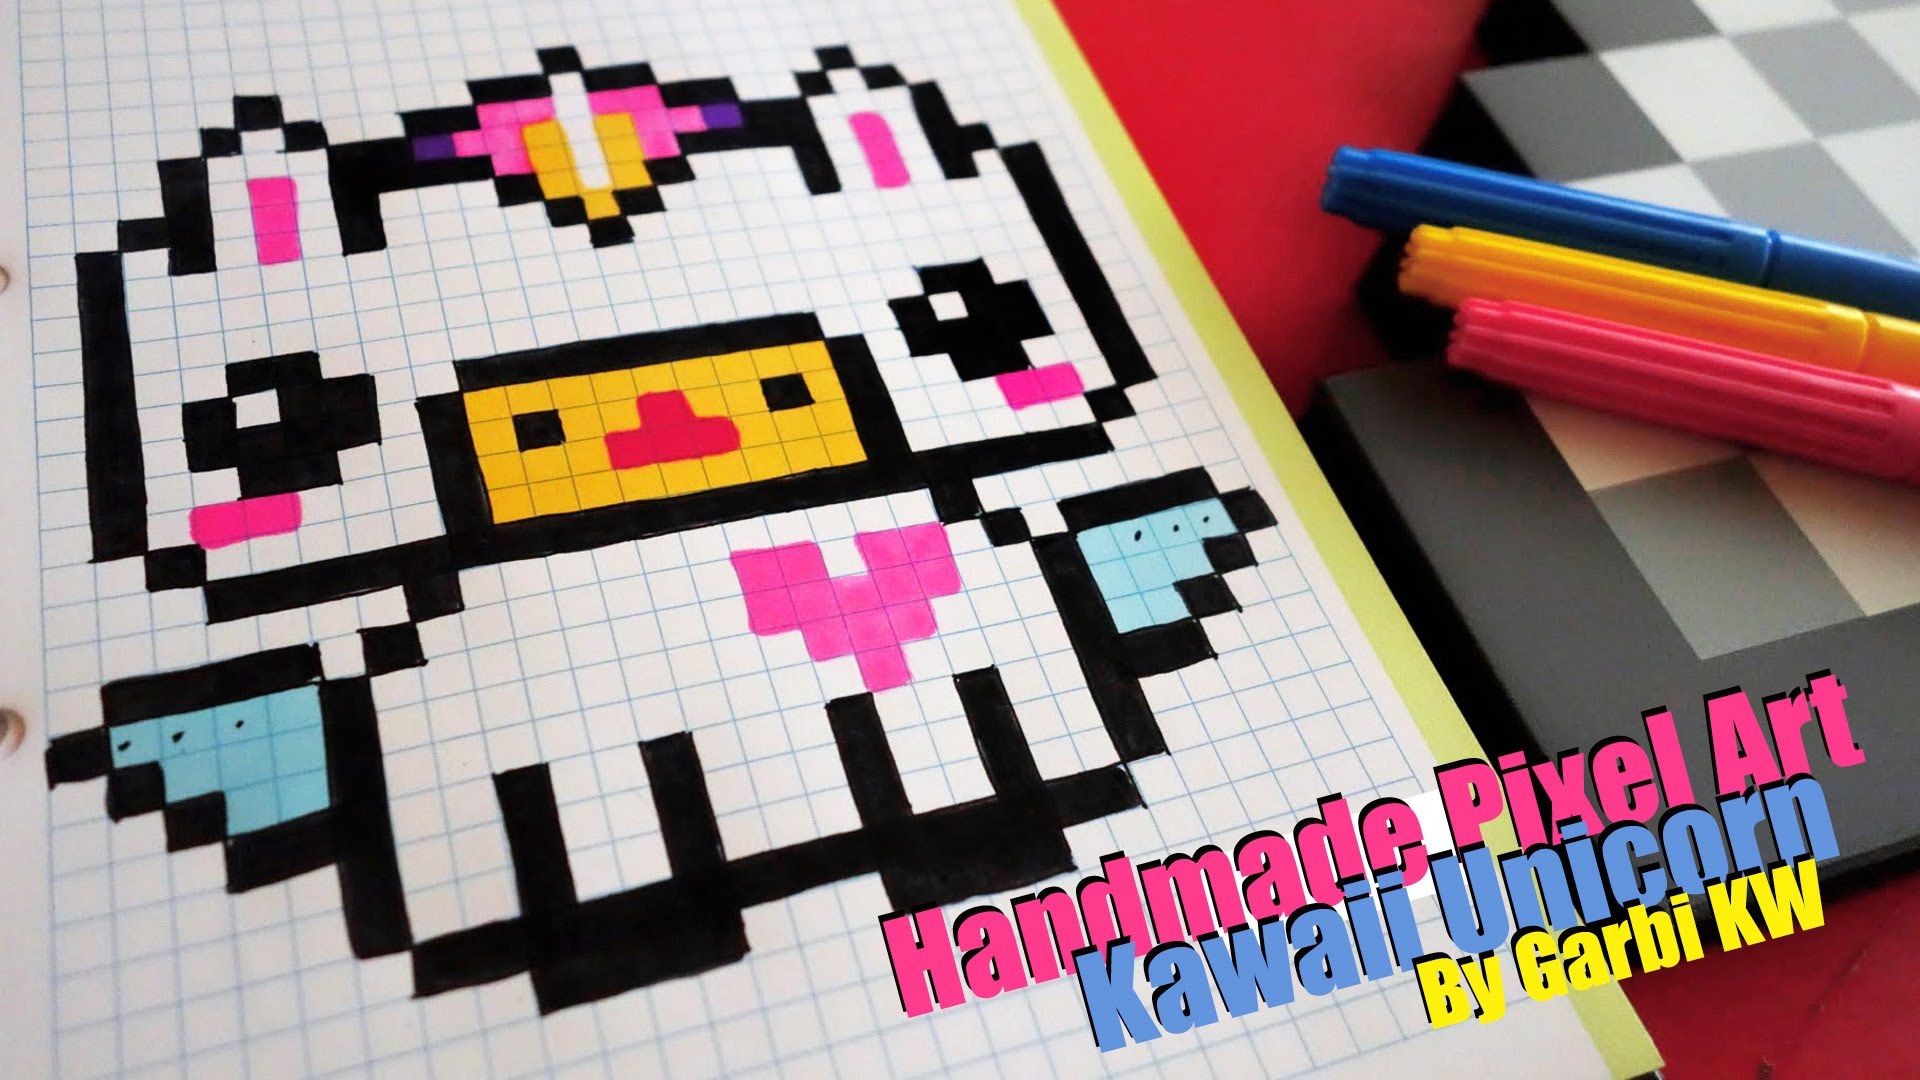 Drawn pixel art garbi kw Unicorn Art YouTube KW Kawaii